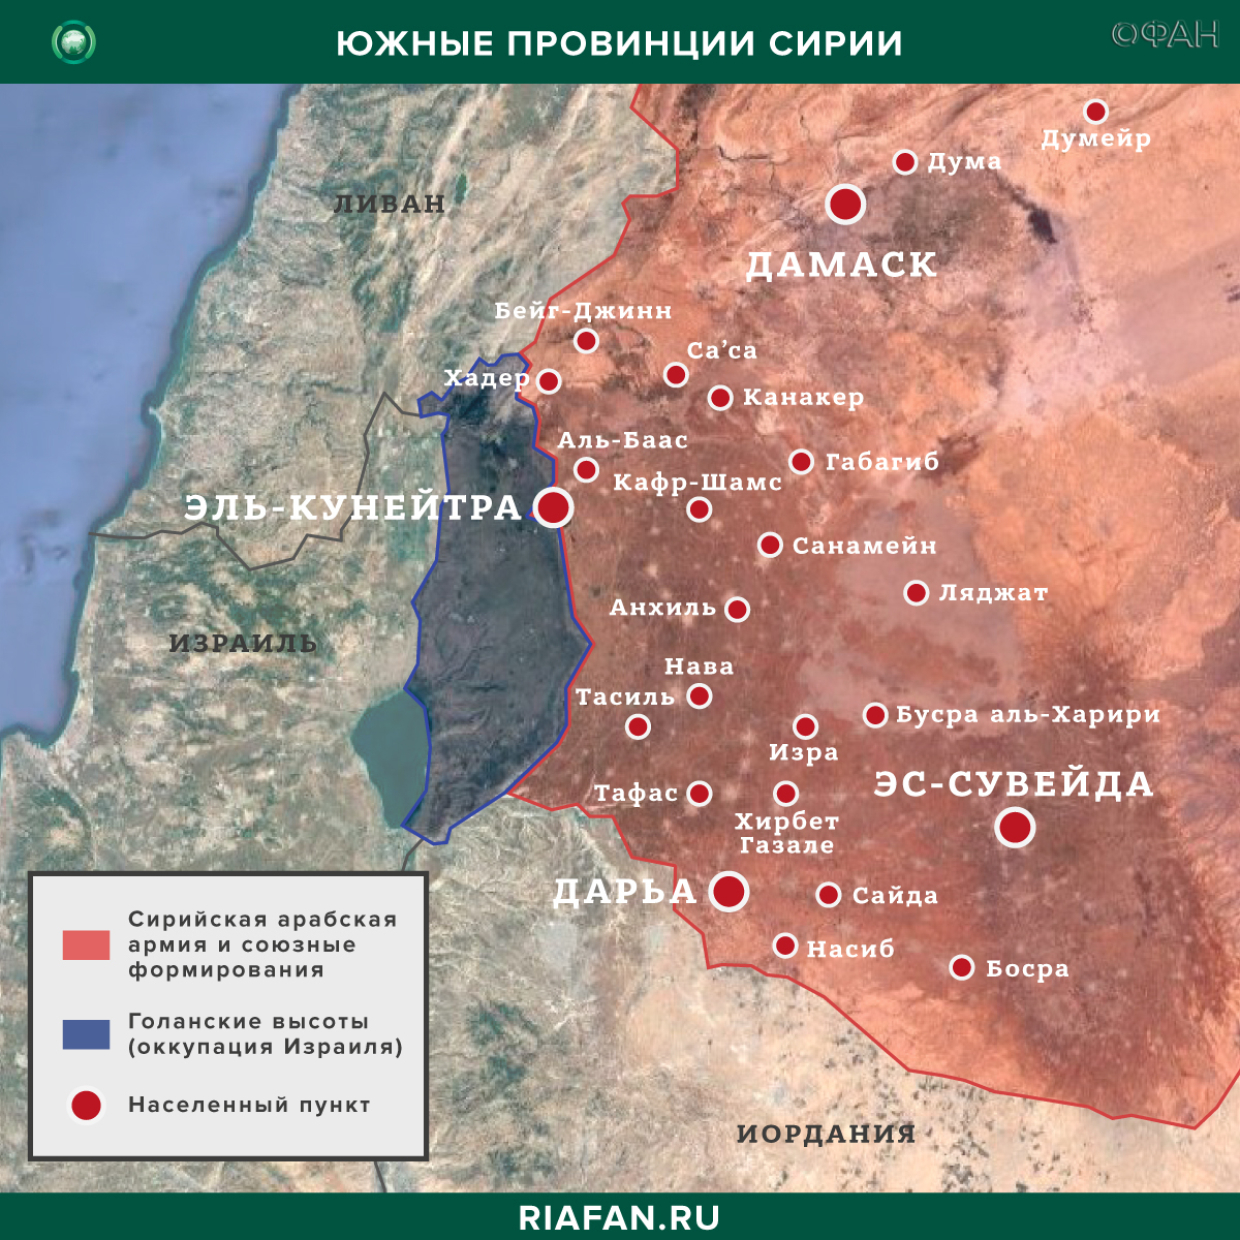 Syria news 31 August 16.30: Turkish Armed Forces begin construction of a new checkpoint in Idlib